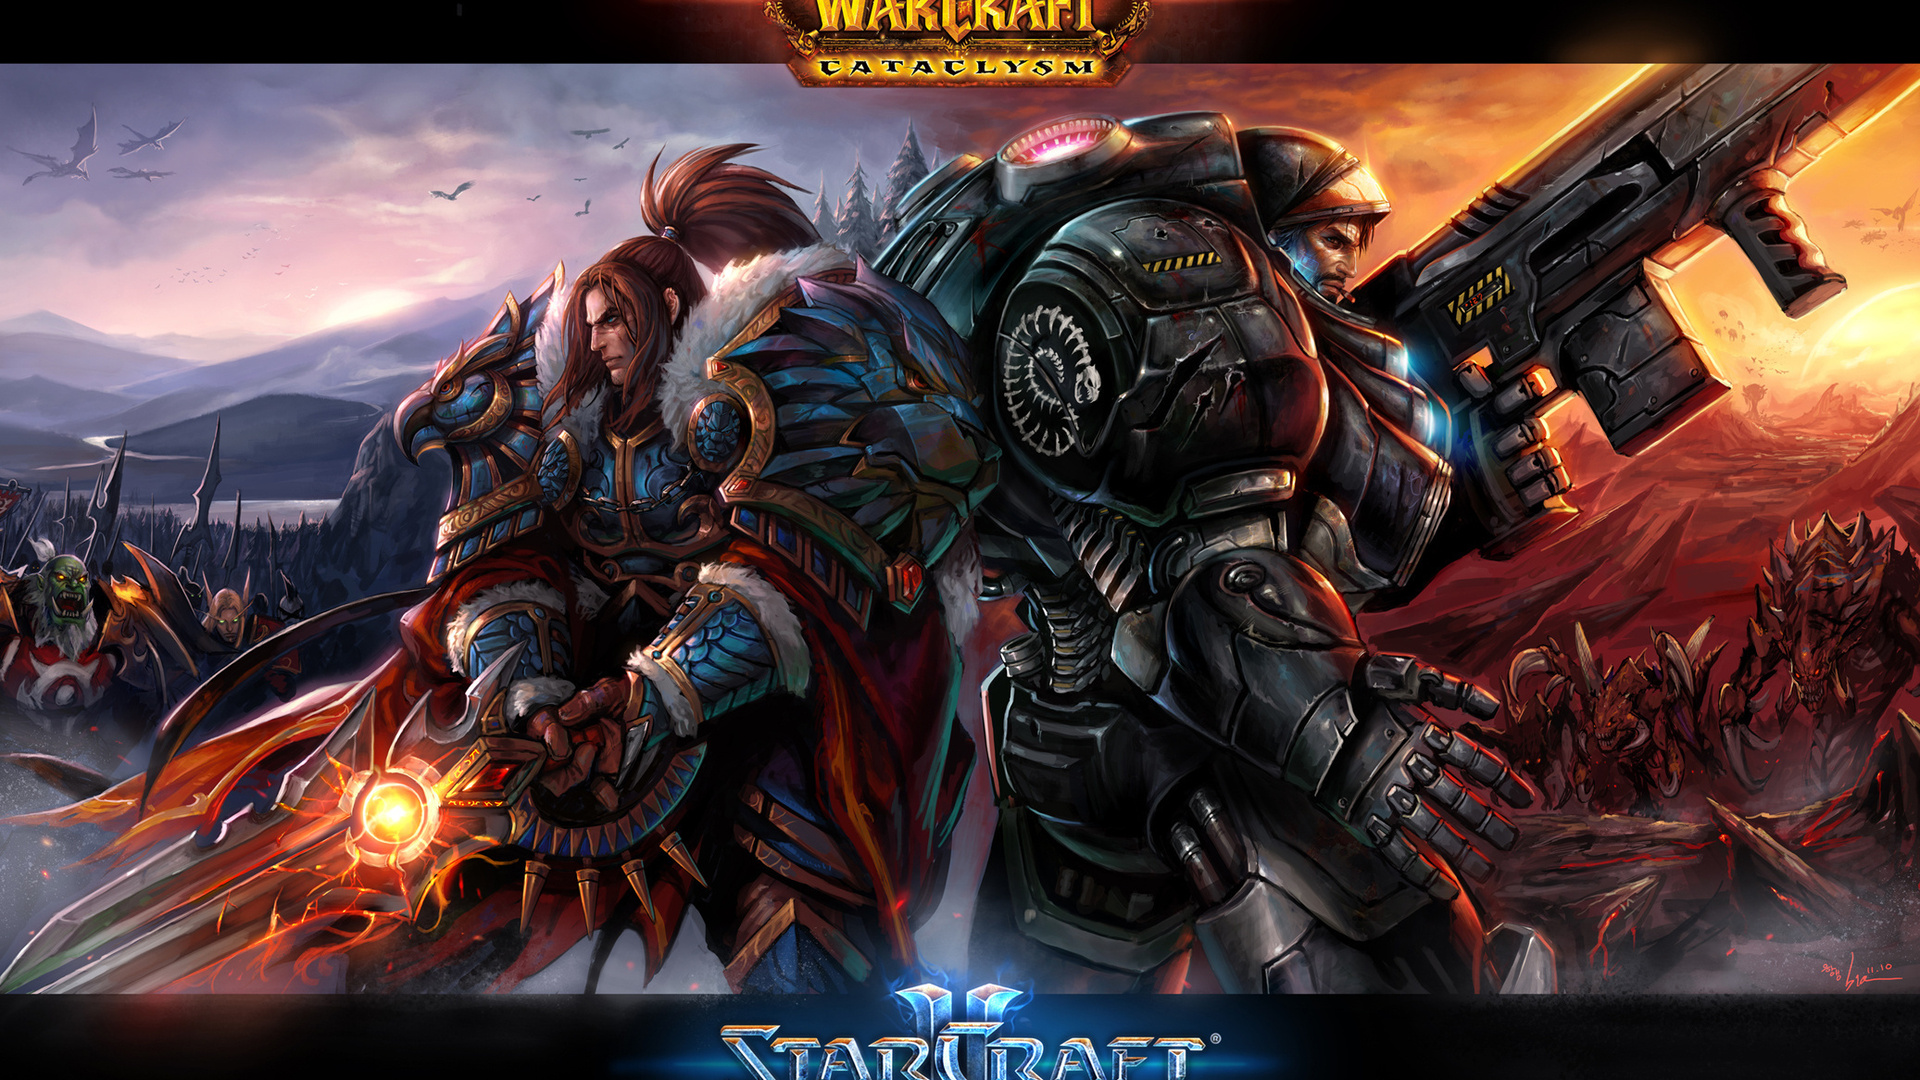 WOW Warrior Wallpaper - WallpaperSafari